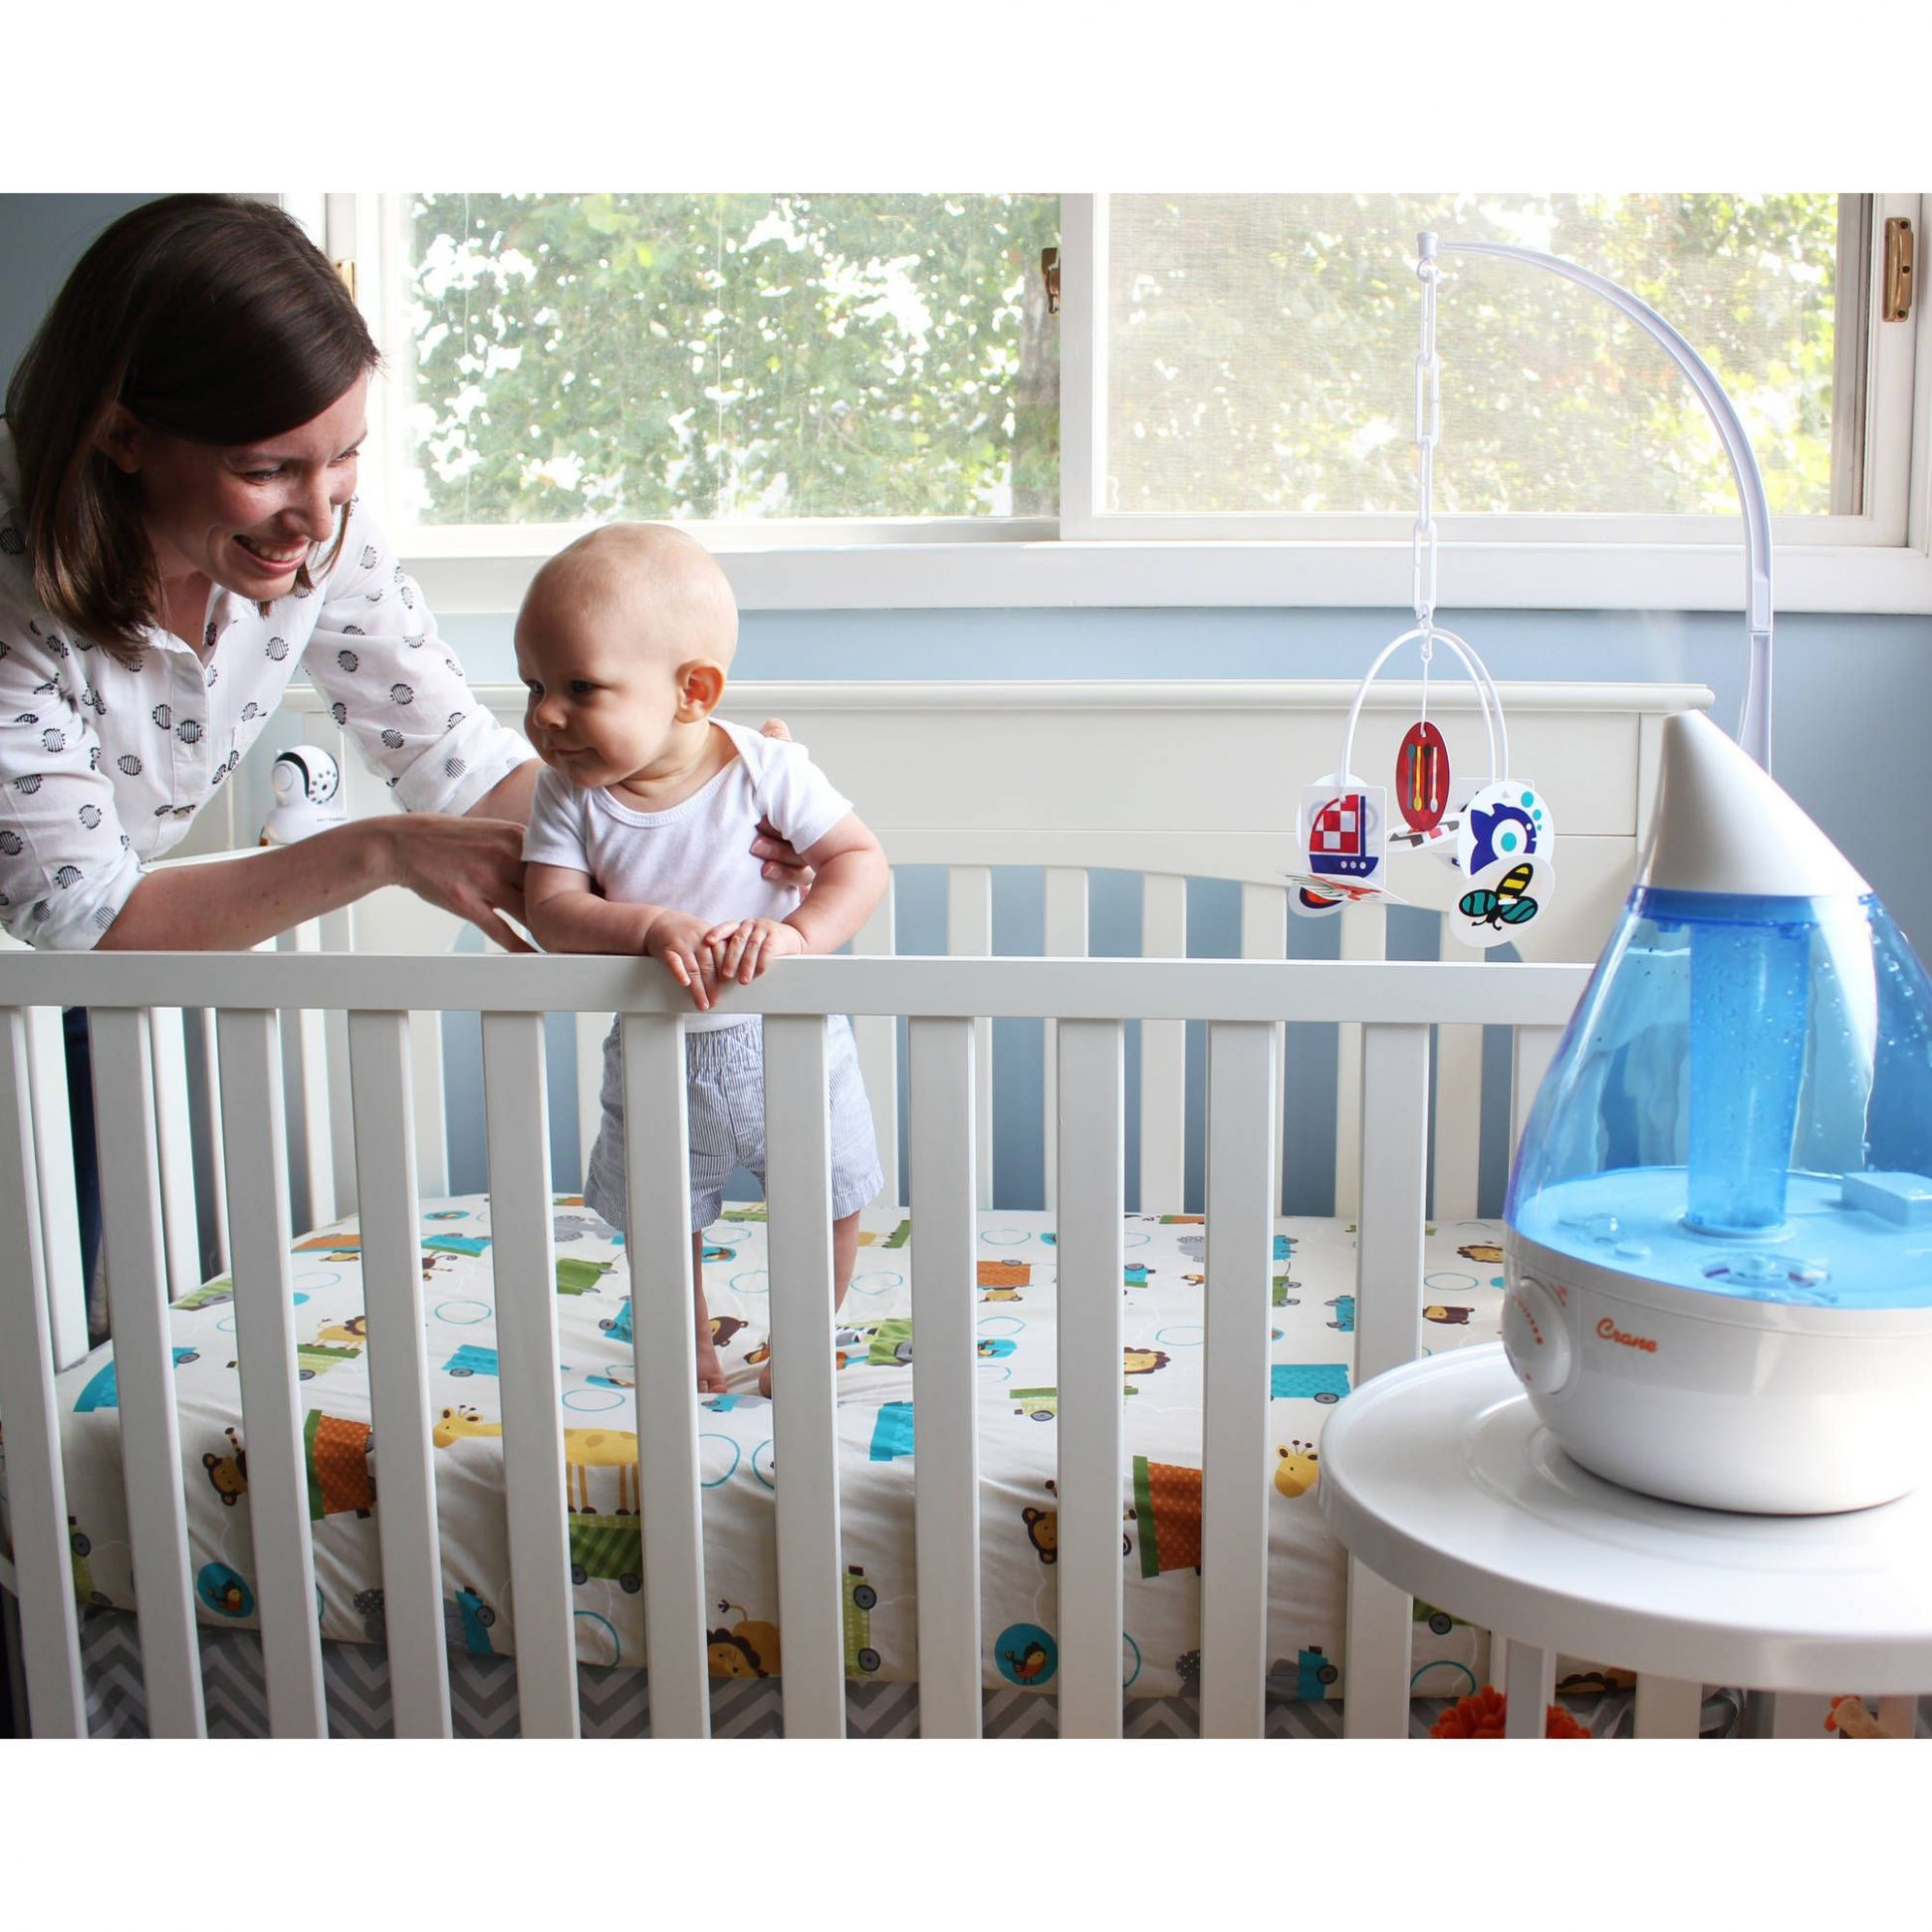 The 9 Best Humidifiers for Babies of 9 - baby room humidifier